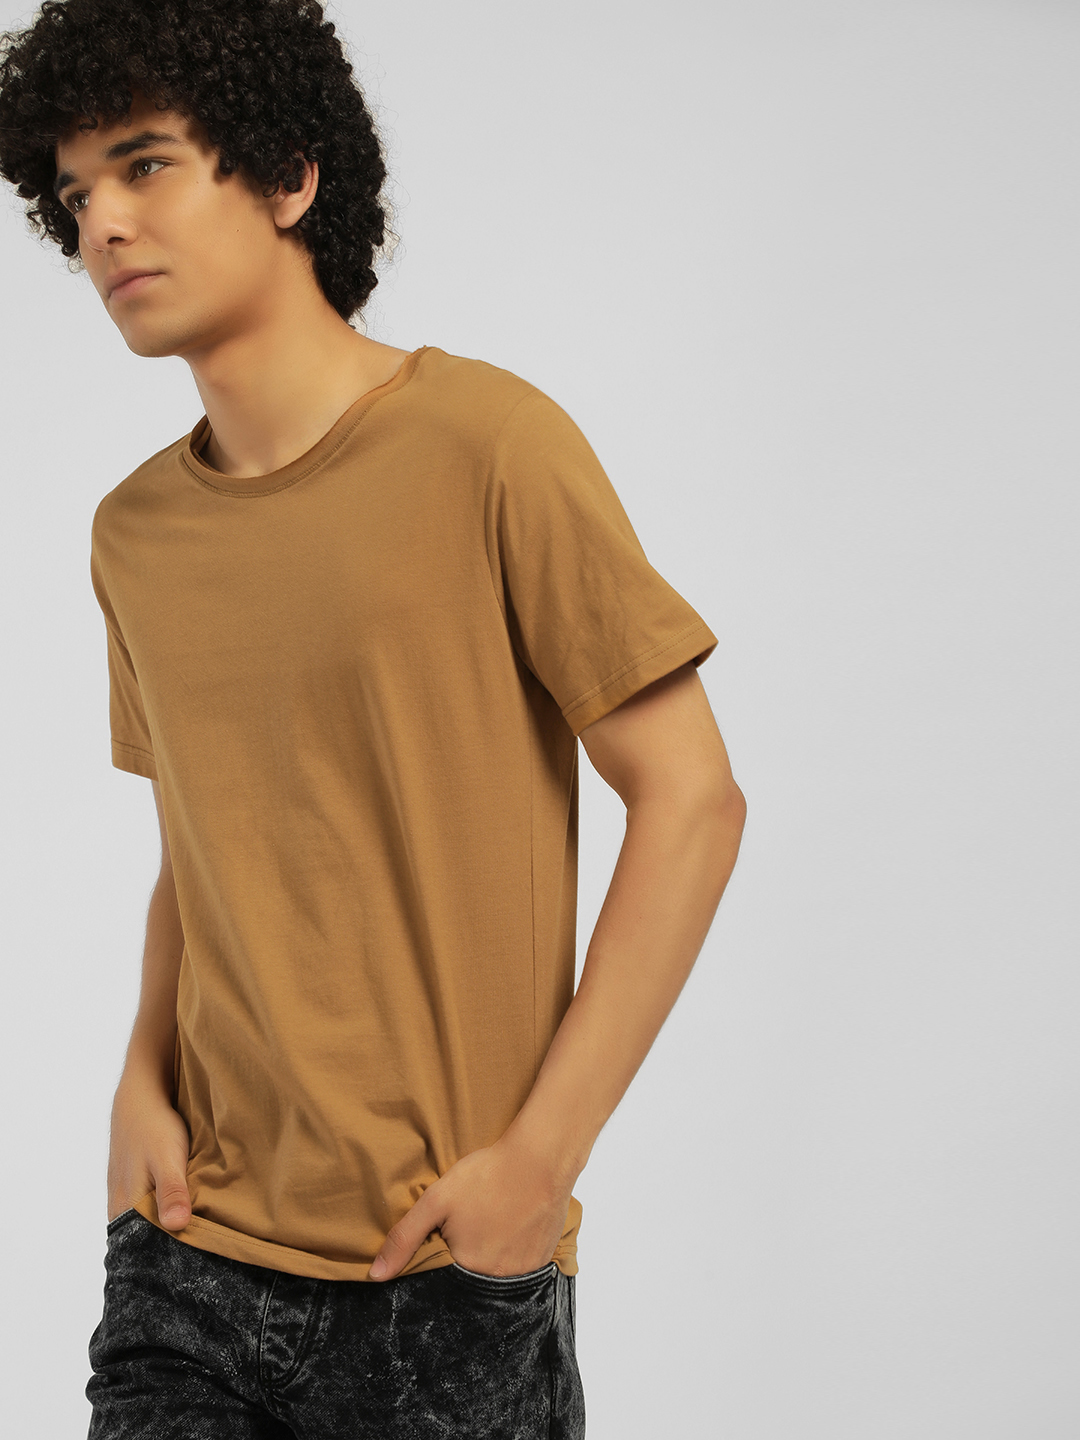 Blue Saint Brown Basic Raw Edge T-Shirt 1